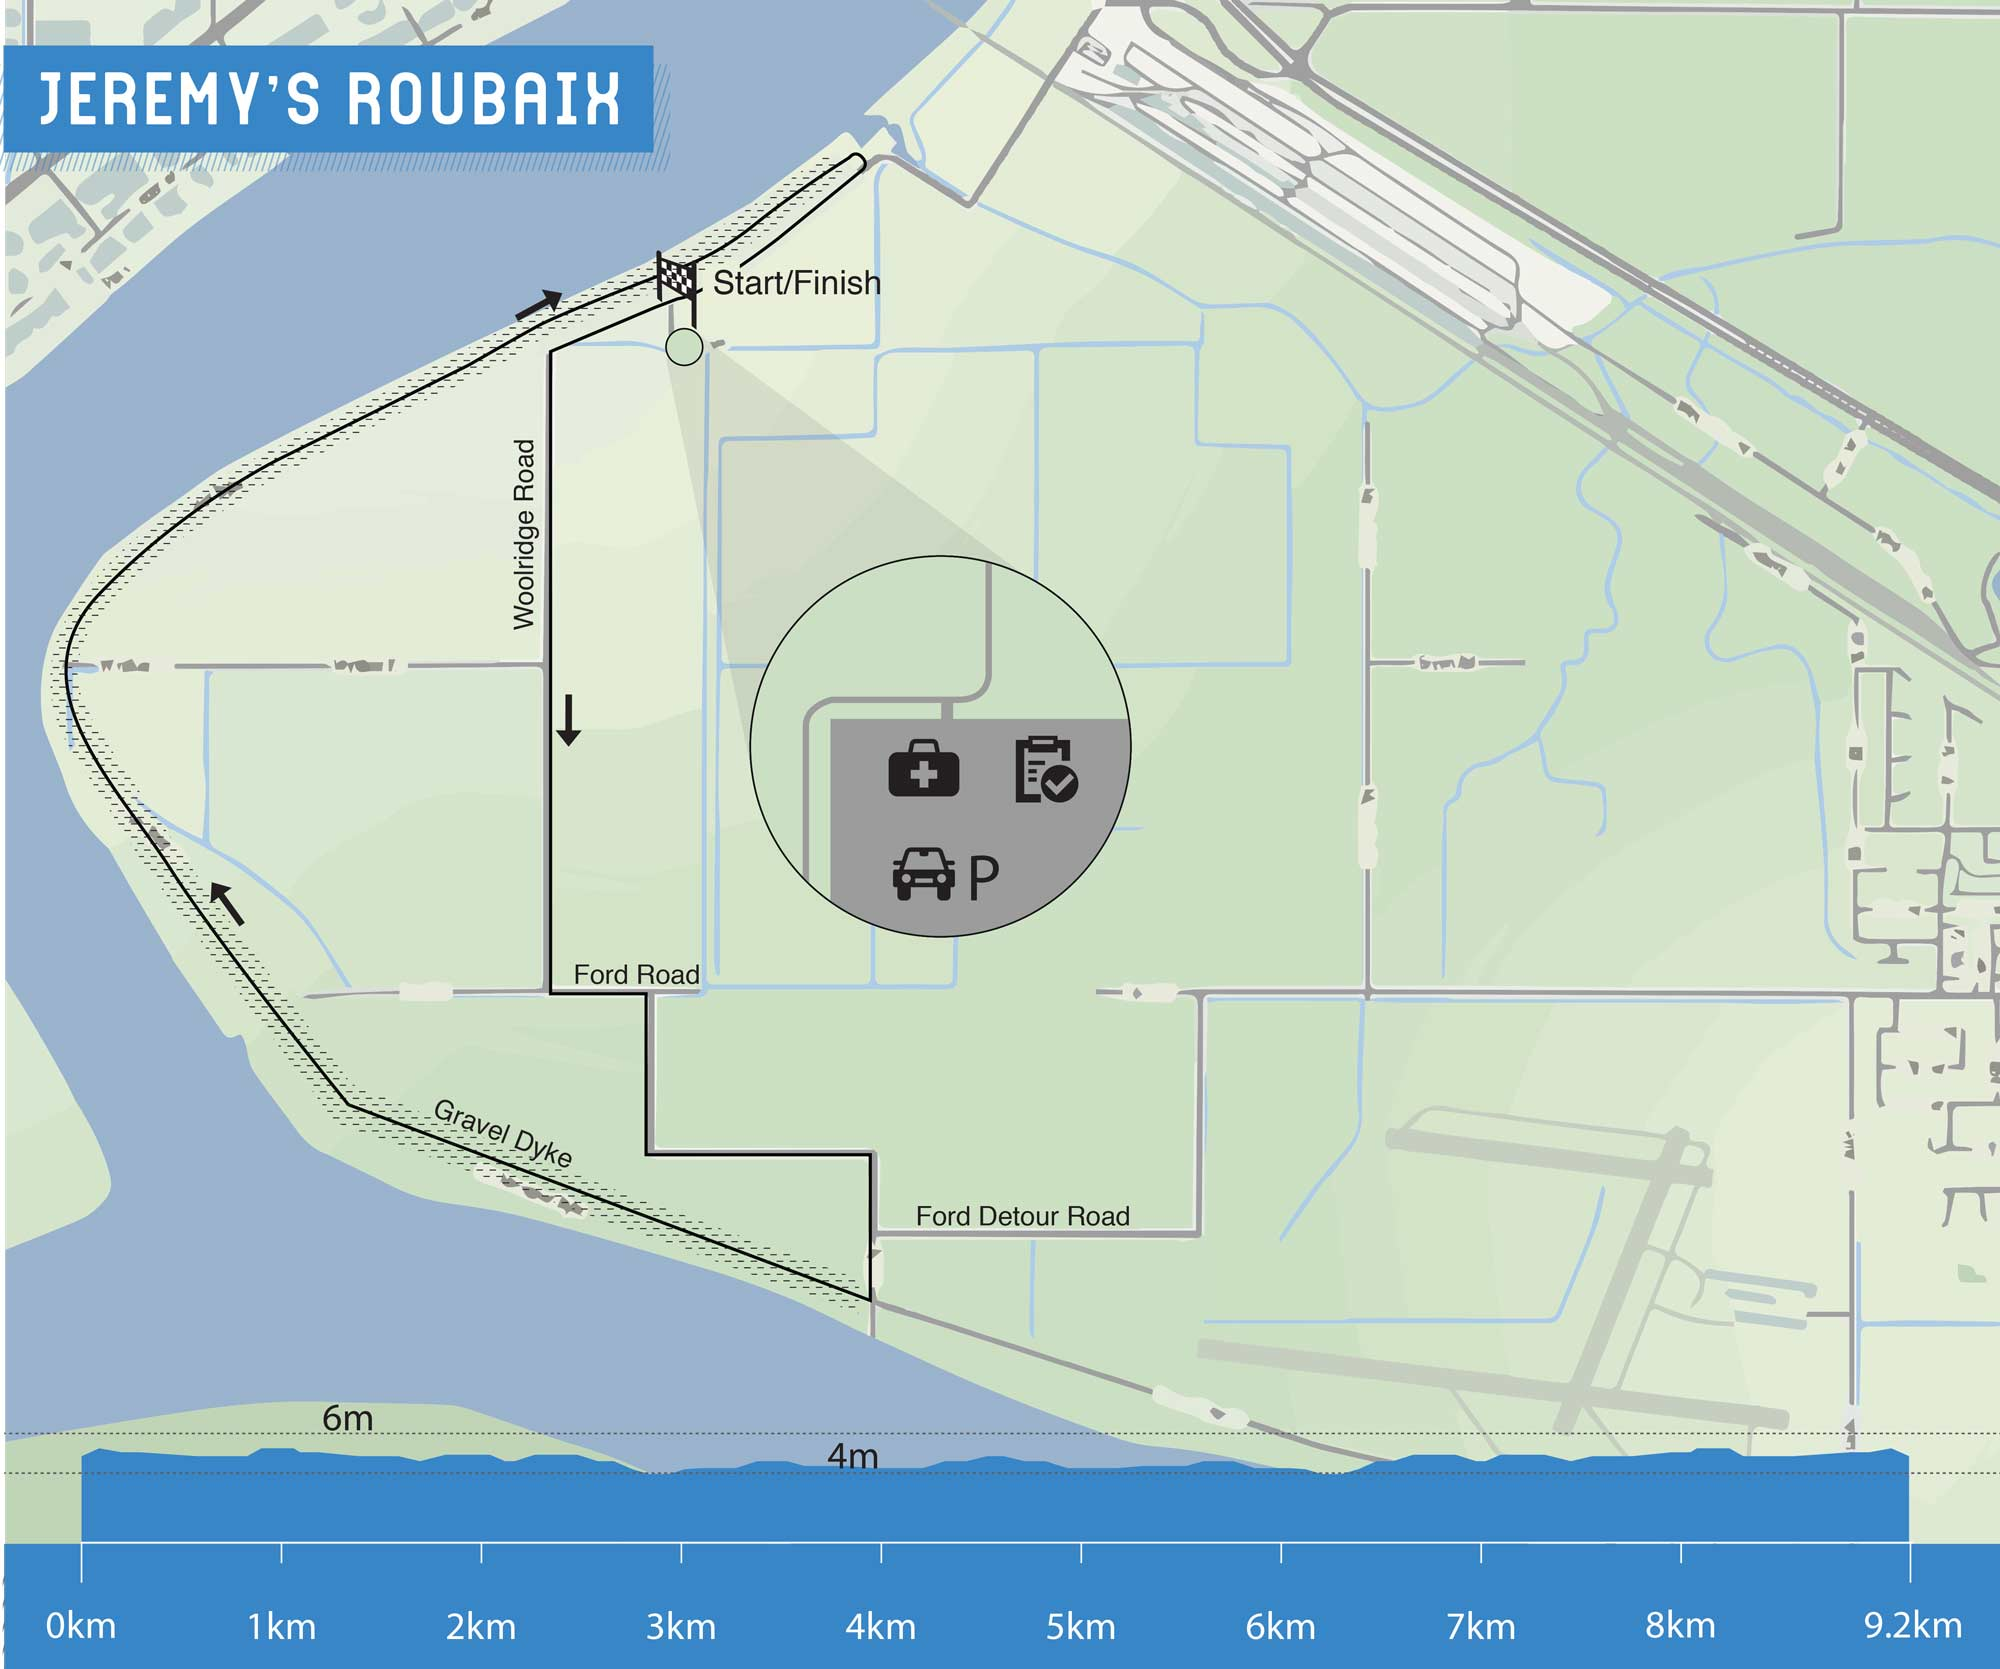 jeremy's-roubaix-race-map